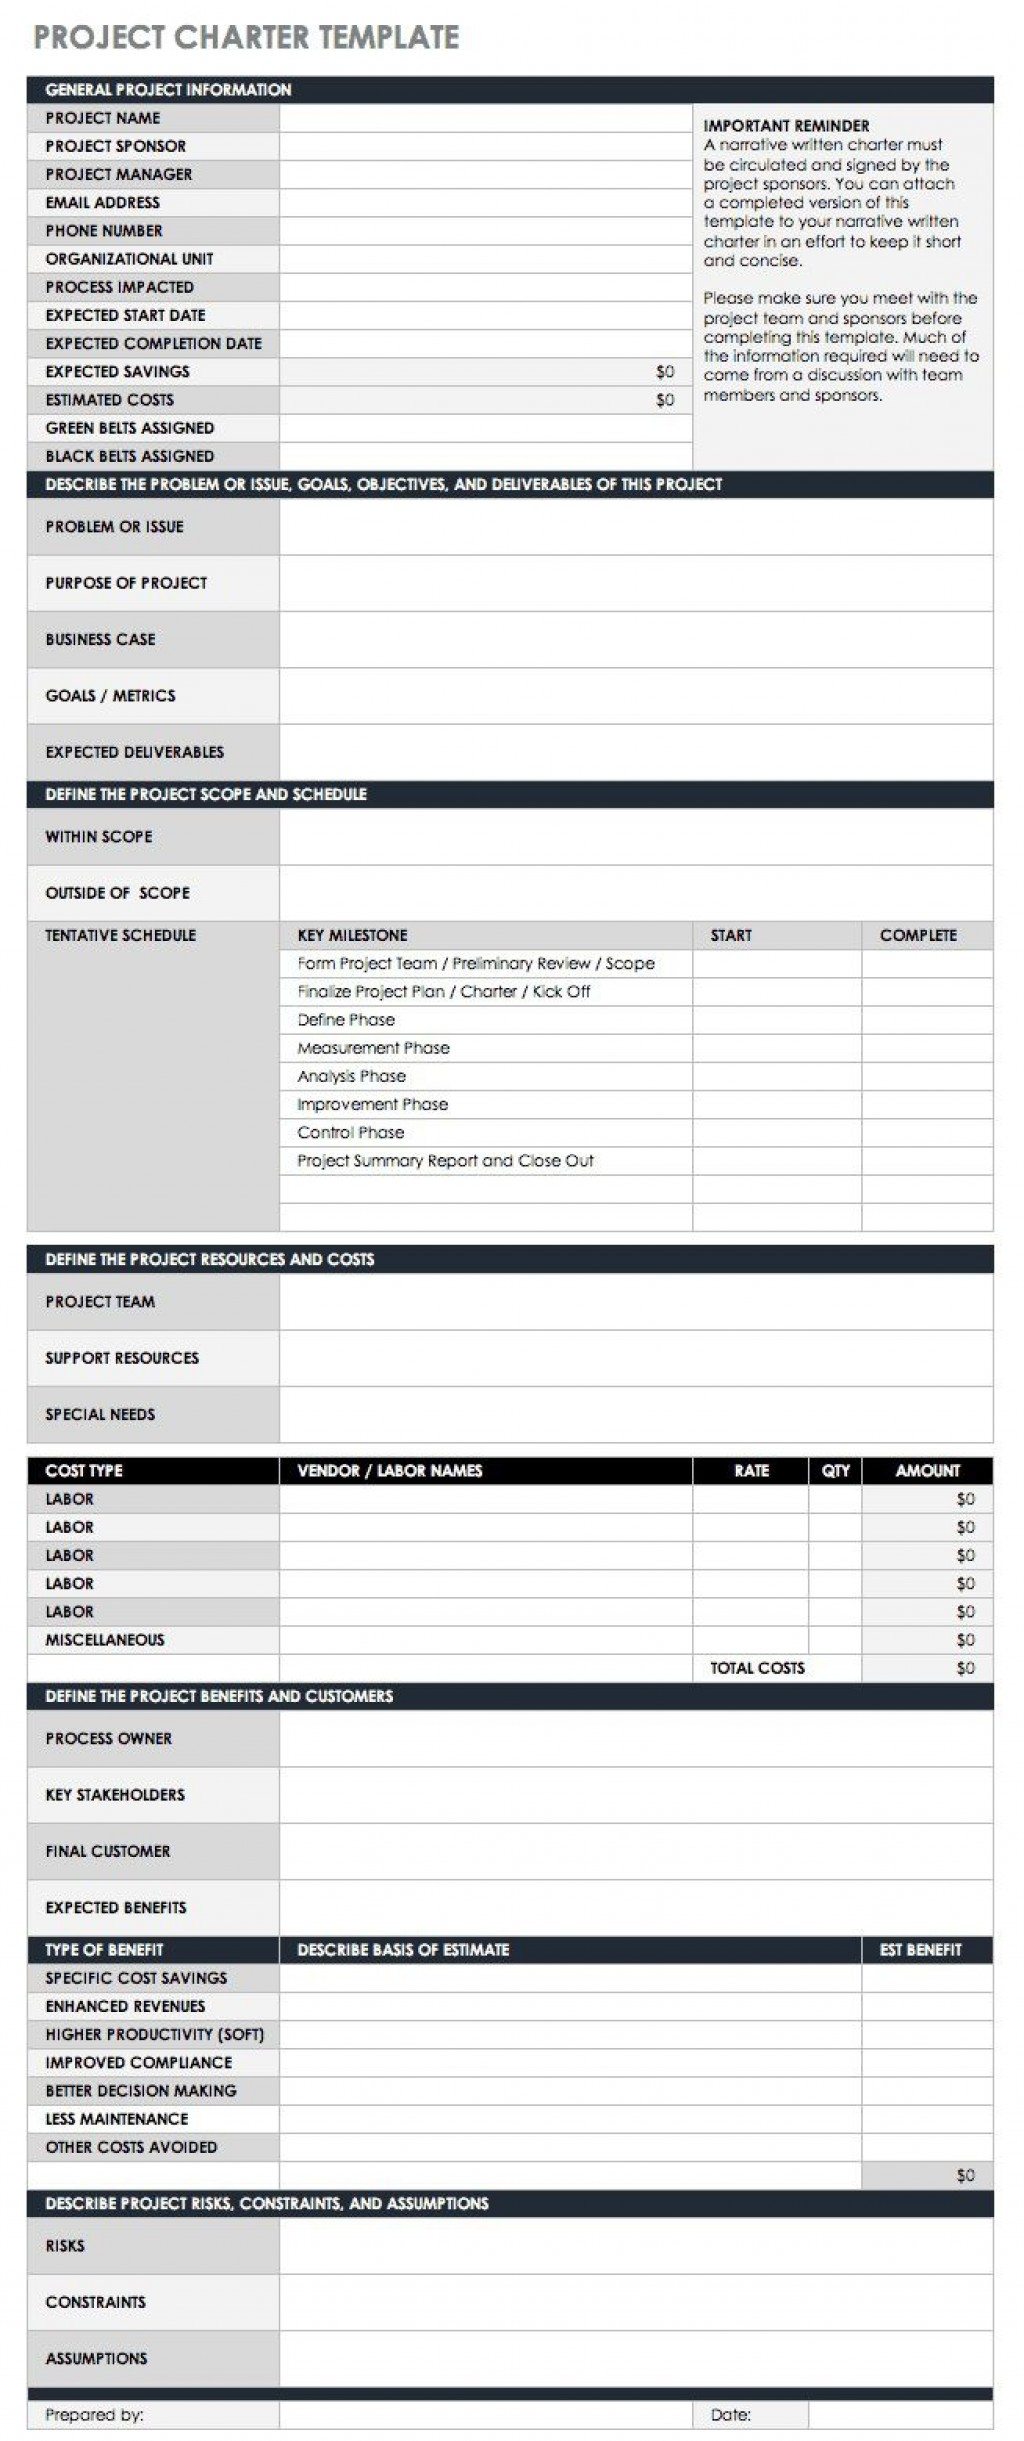 001 Impressive Statement Of Work Template Consulting High Def  SampleLarge